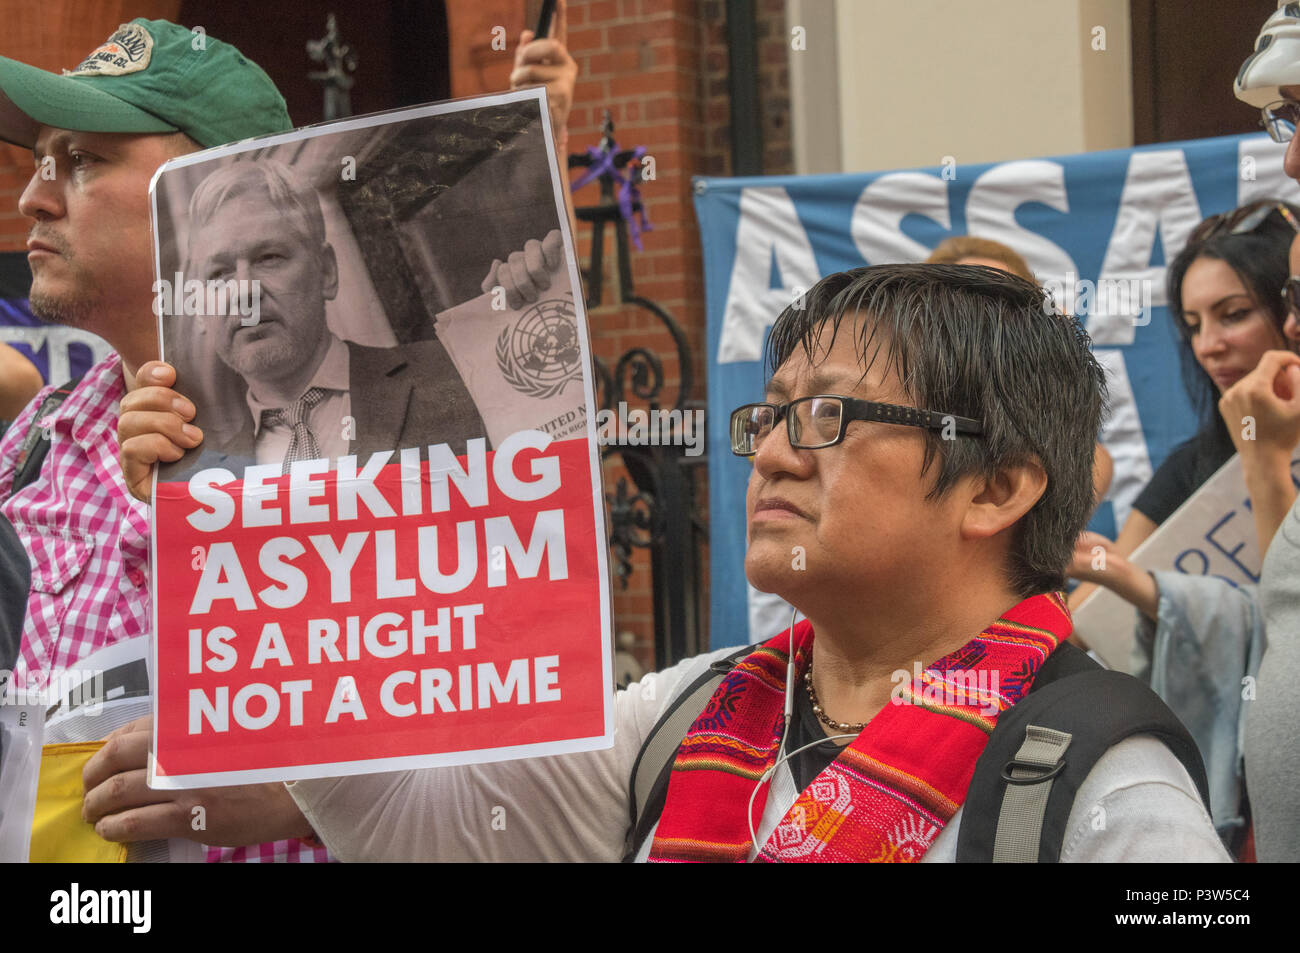 London, UK. 19th June 2018. A woman holds up a poster 'Seeking Asylum is a right not a crime' at the rally outside the Ecuadorian Embassy in London calling for Julian Assange to be allowed safe passage to the place of his choice to mark six years since he was given asylum there. They called for the UK authorities to allow him to leave the embassy and go to the country of his choice without being arrested. Credit: Peter Marshall/Alamy Live News - Stock Image